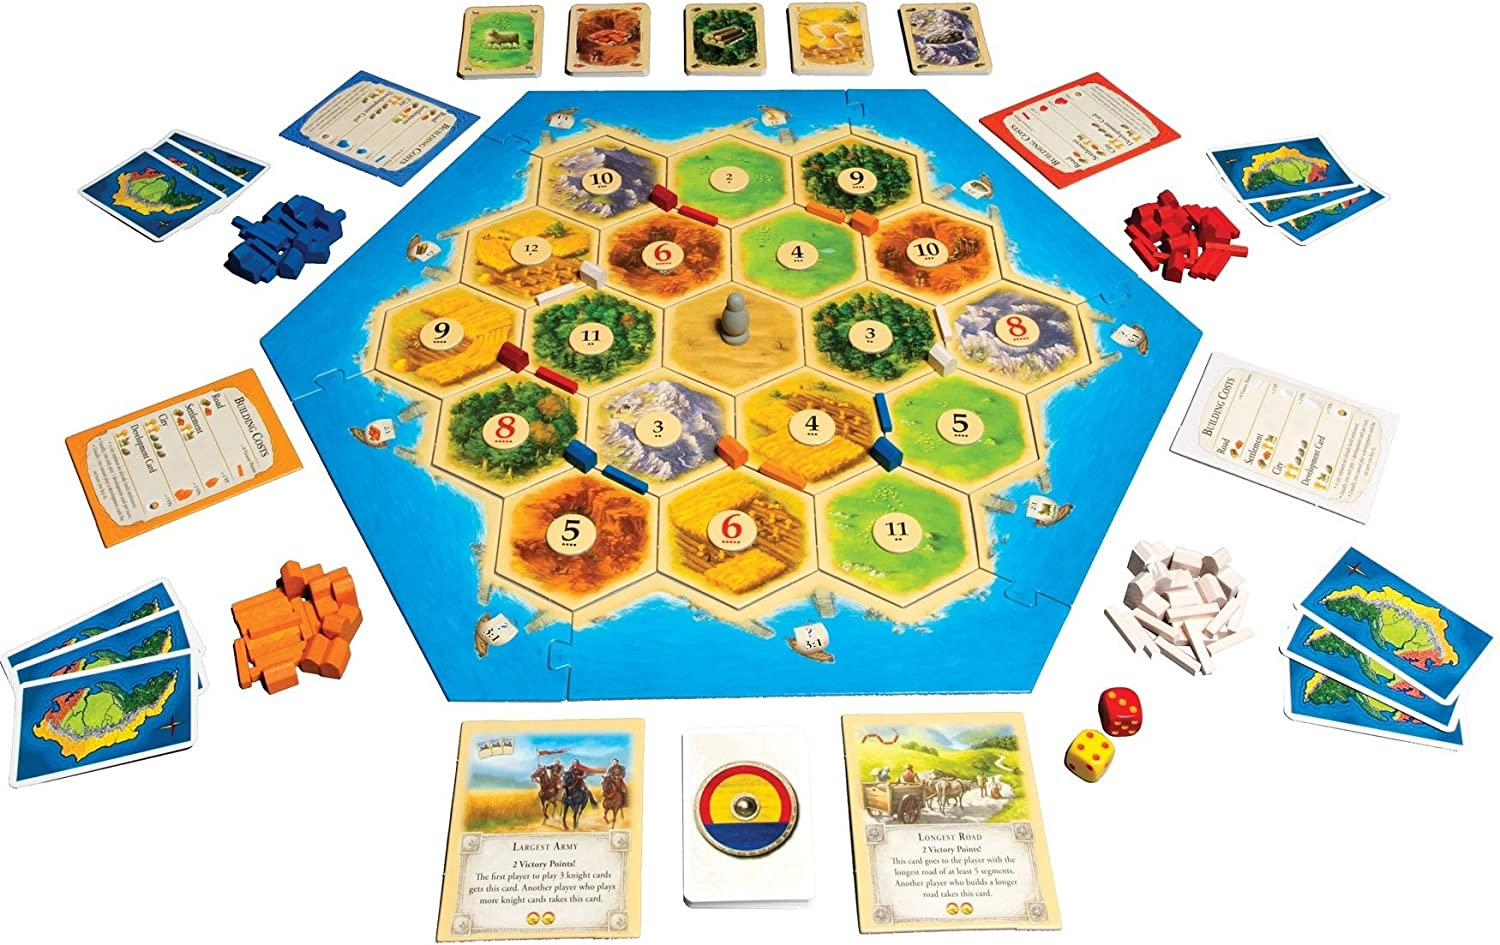 Catan | Trade Build Settle | 3 a 4 Jugadores, 60 Minutos | Again Products Bundle: Amazon.es: Juguetes y juegos